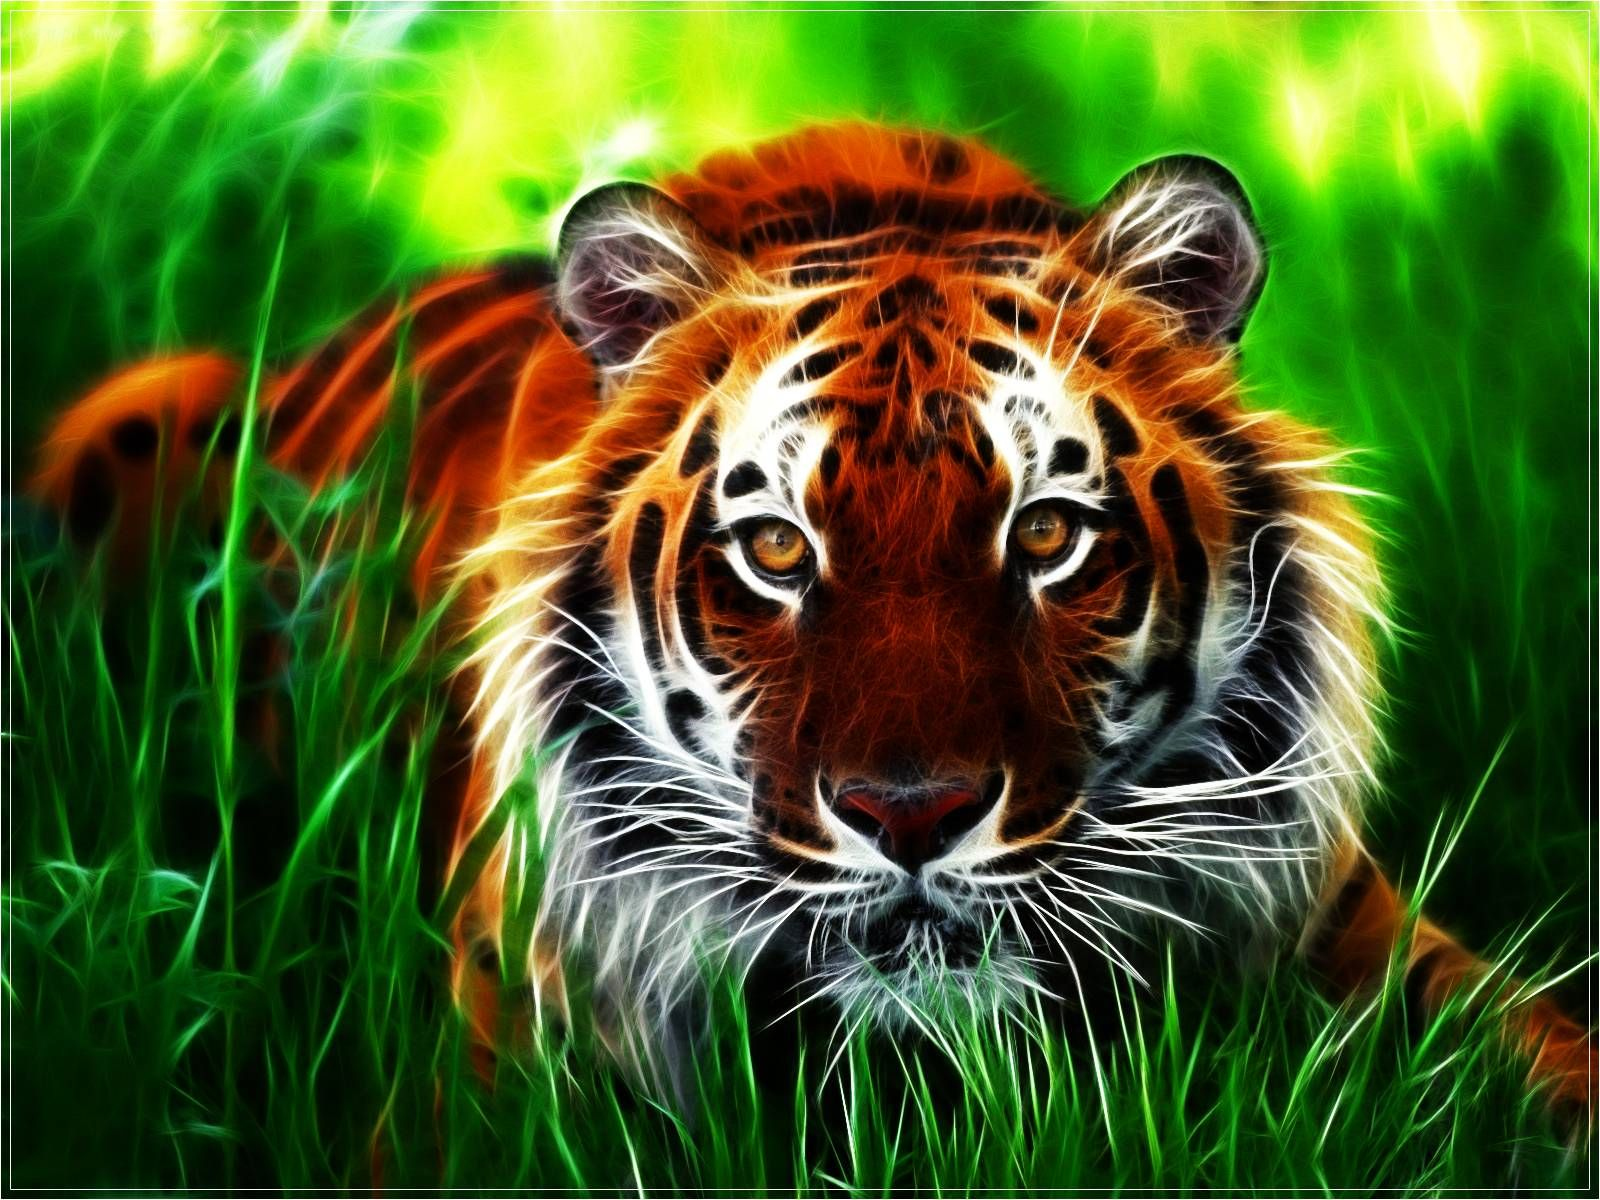 d animated tiger wallpapers d wallpaper hd 1600a—1200 tigar wallpapers 32 wallpapers